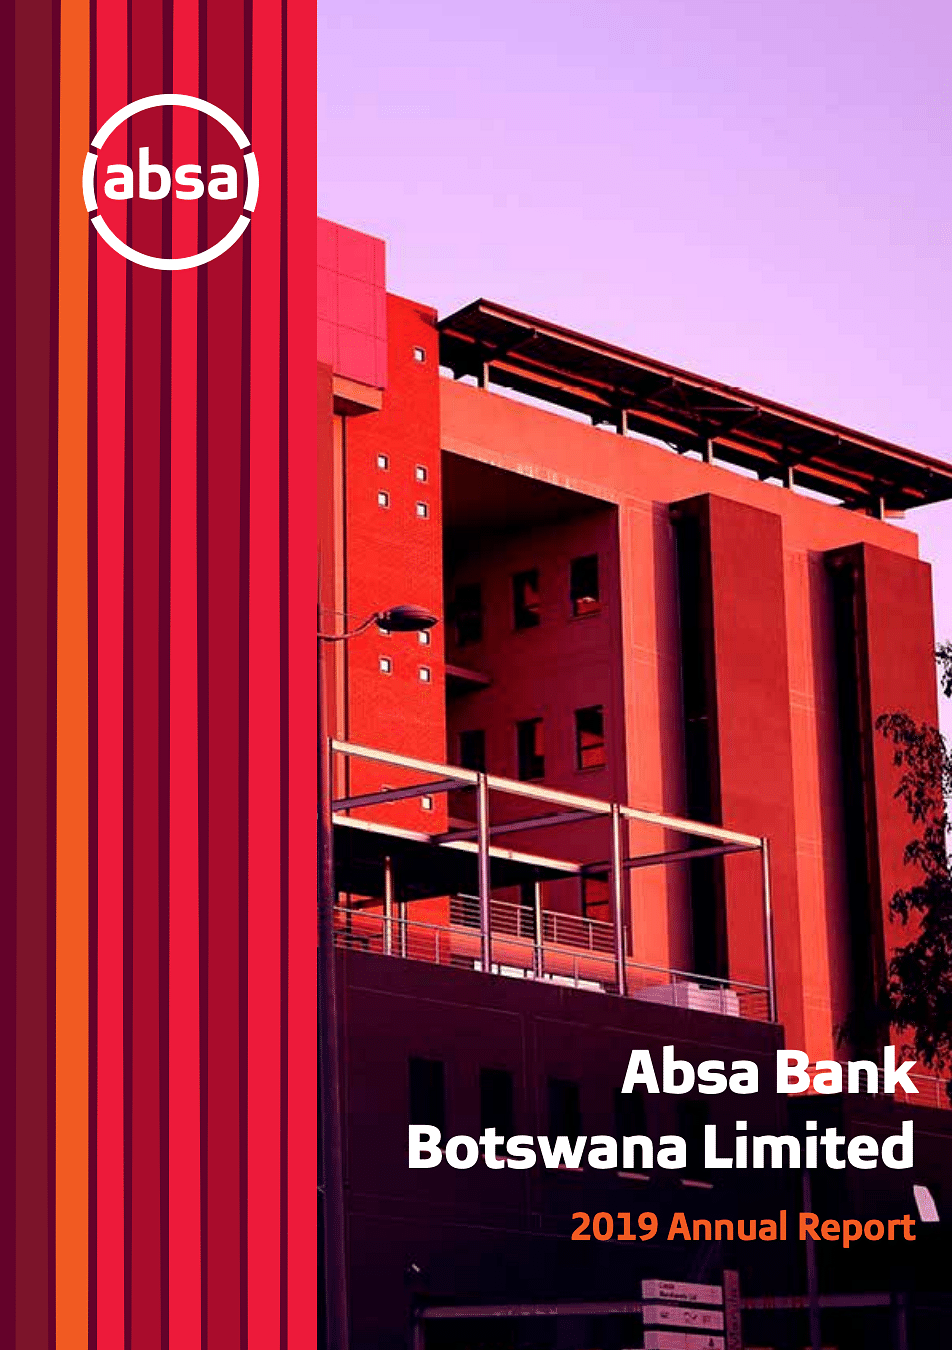 Absa Bank Botswana Annual Report 2019 cover